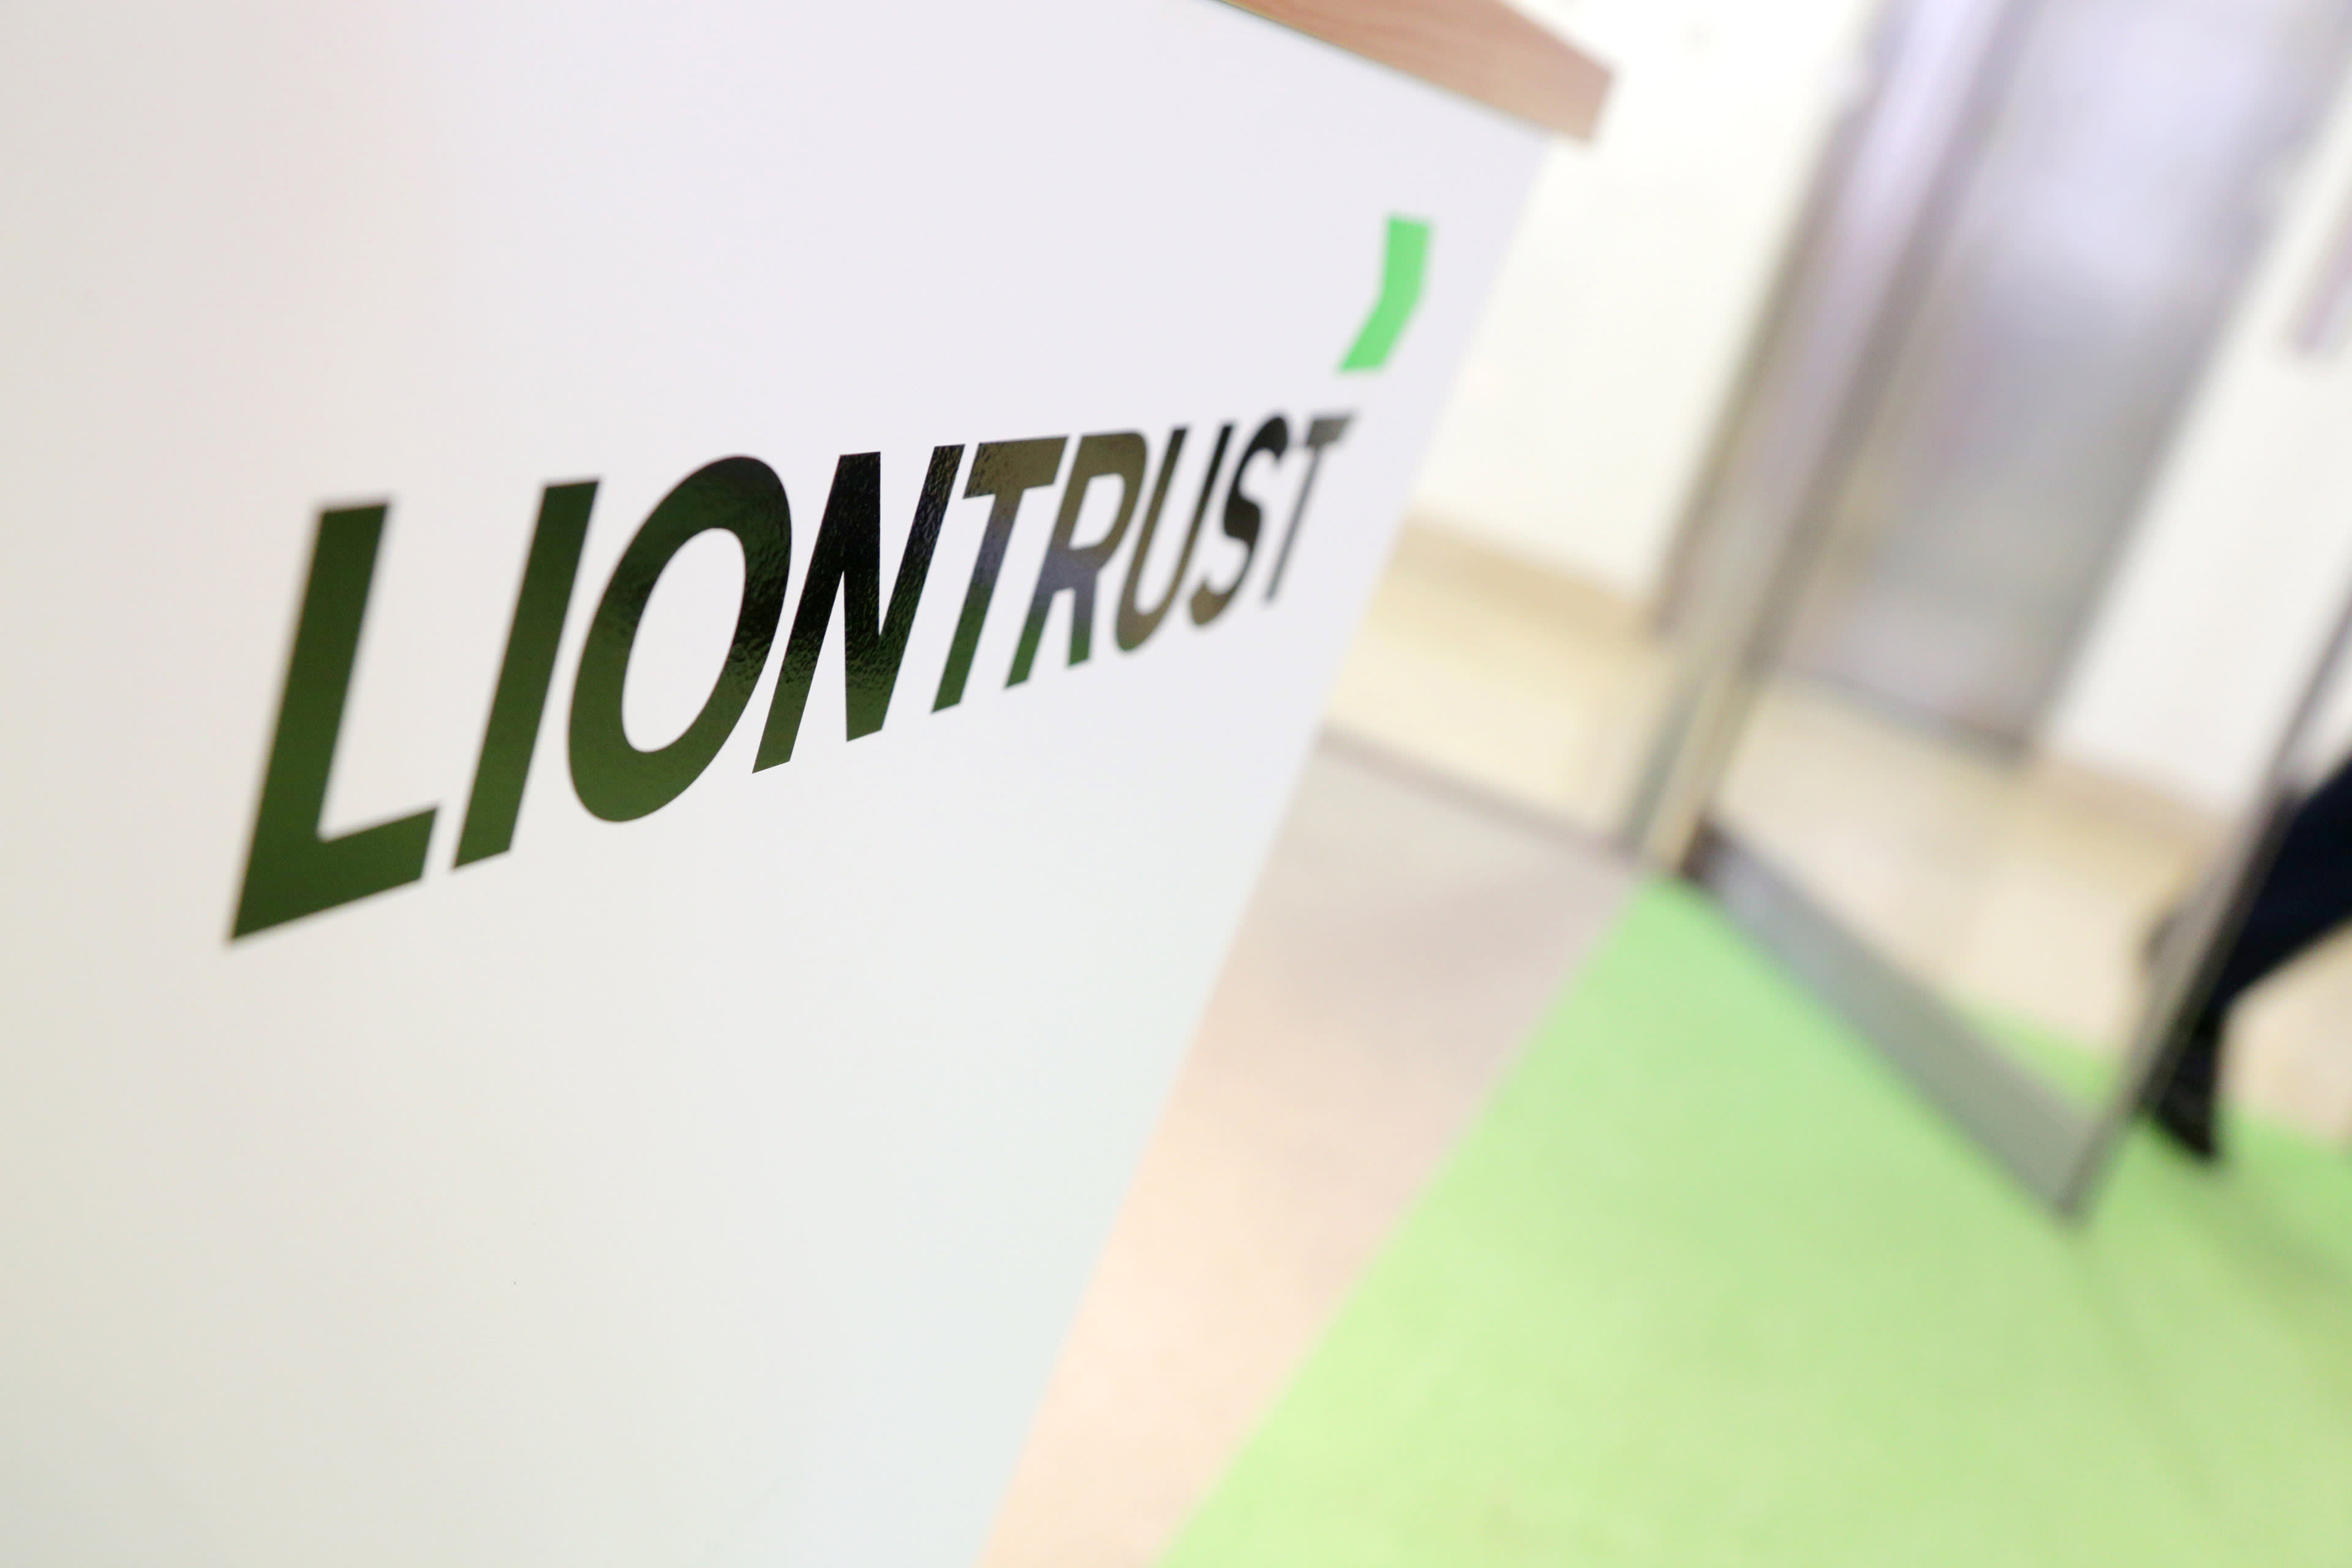 Liontrust assets up 15% as inflows soar